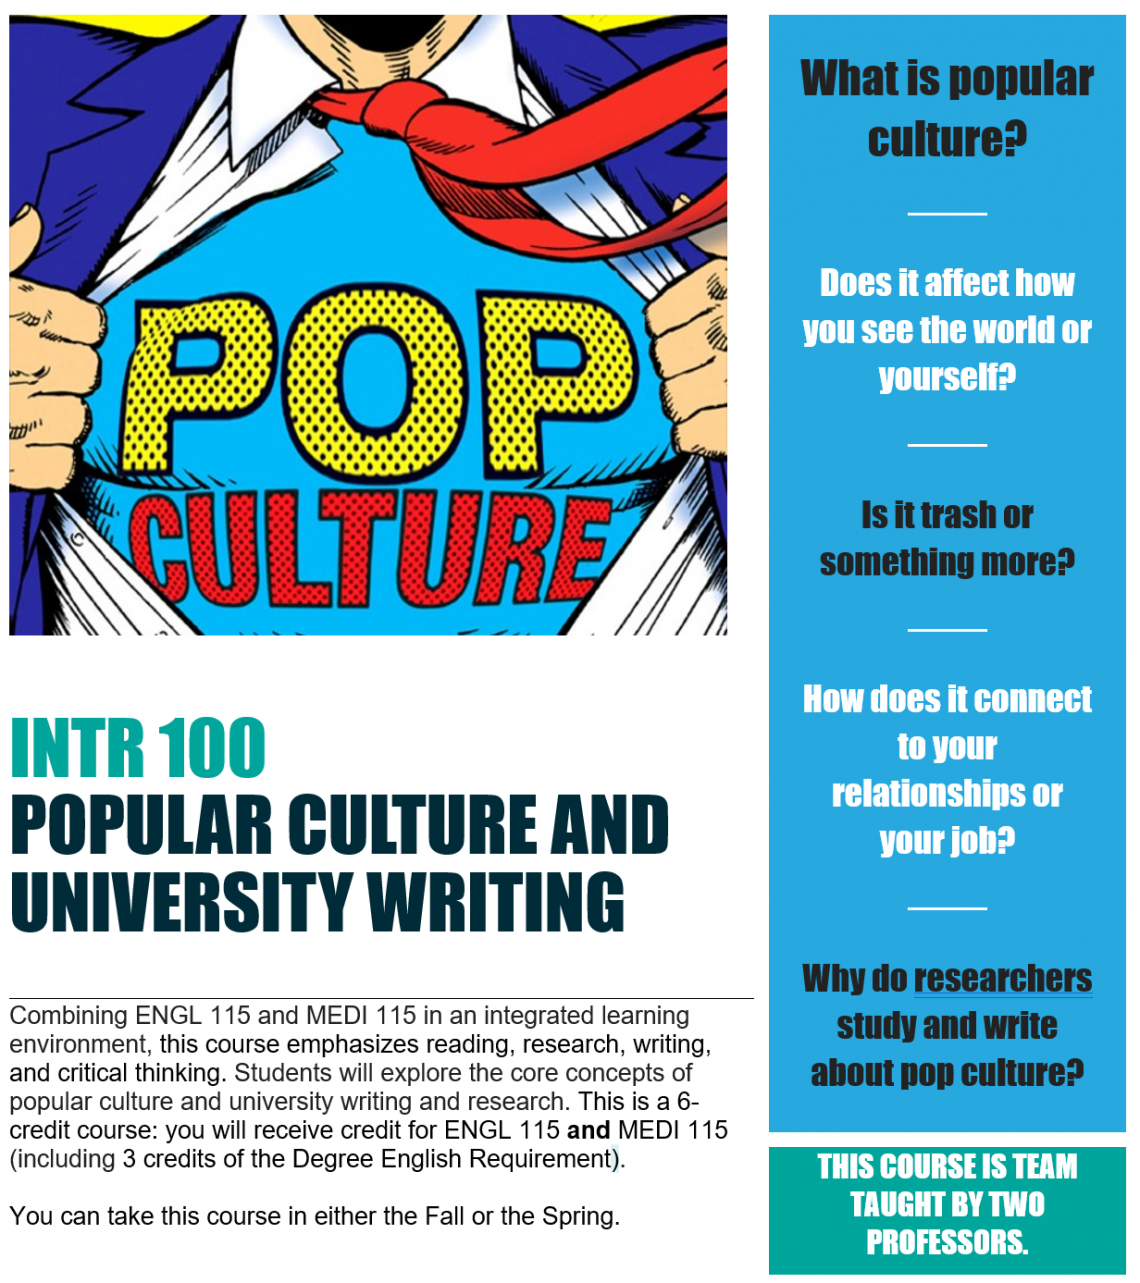 A combination of ENGL 115 and MEDI 115 in an integrated learning environment. Students will explore the core concepts of popular culture and university writing and research.